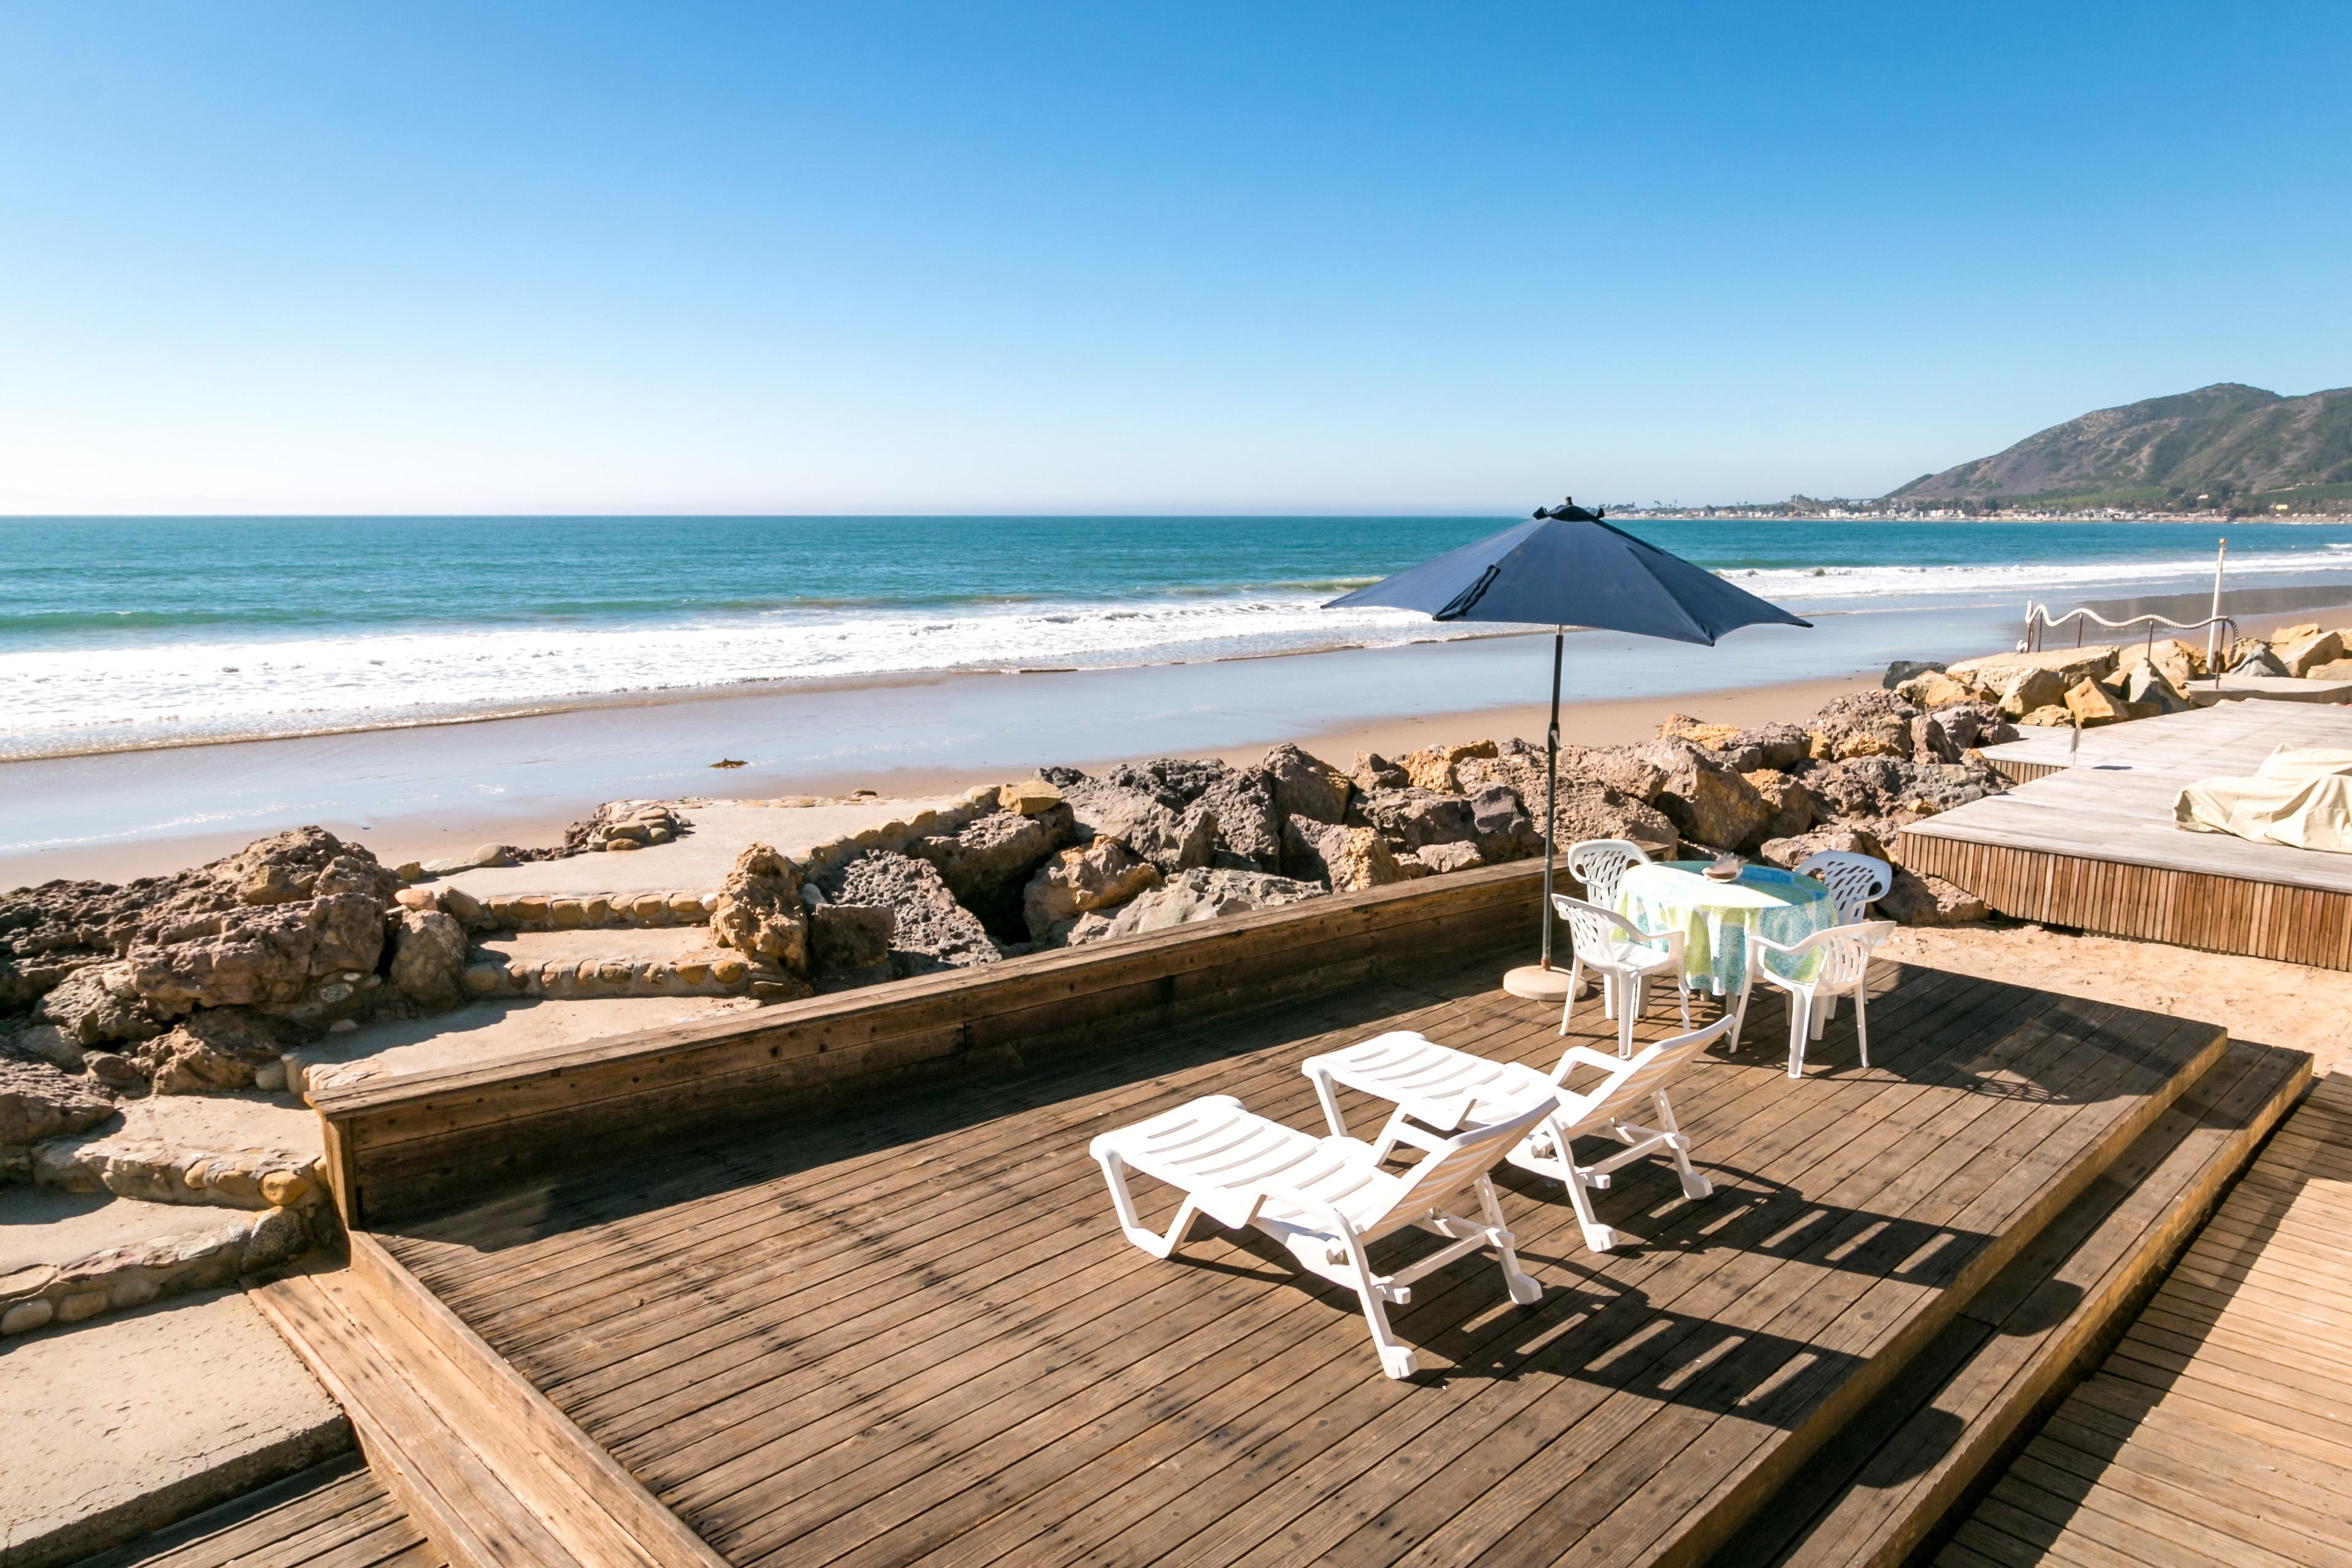 A secluded spot just 30 minutes from Santa Barbara